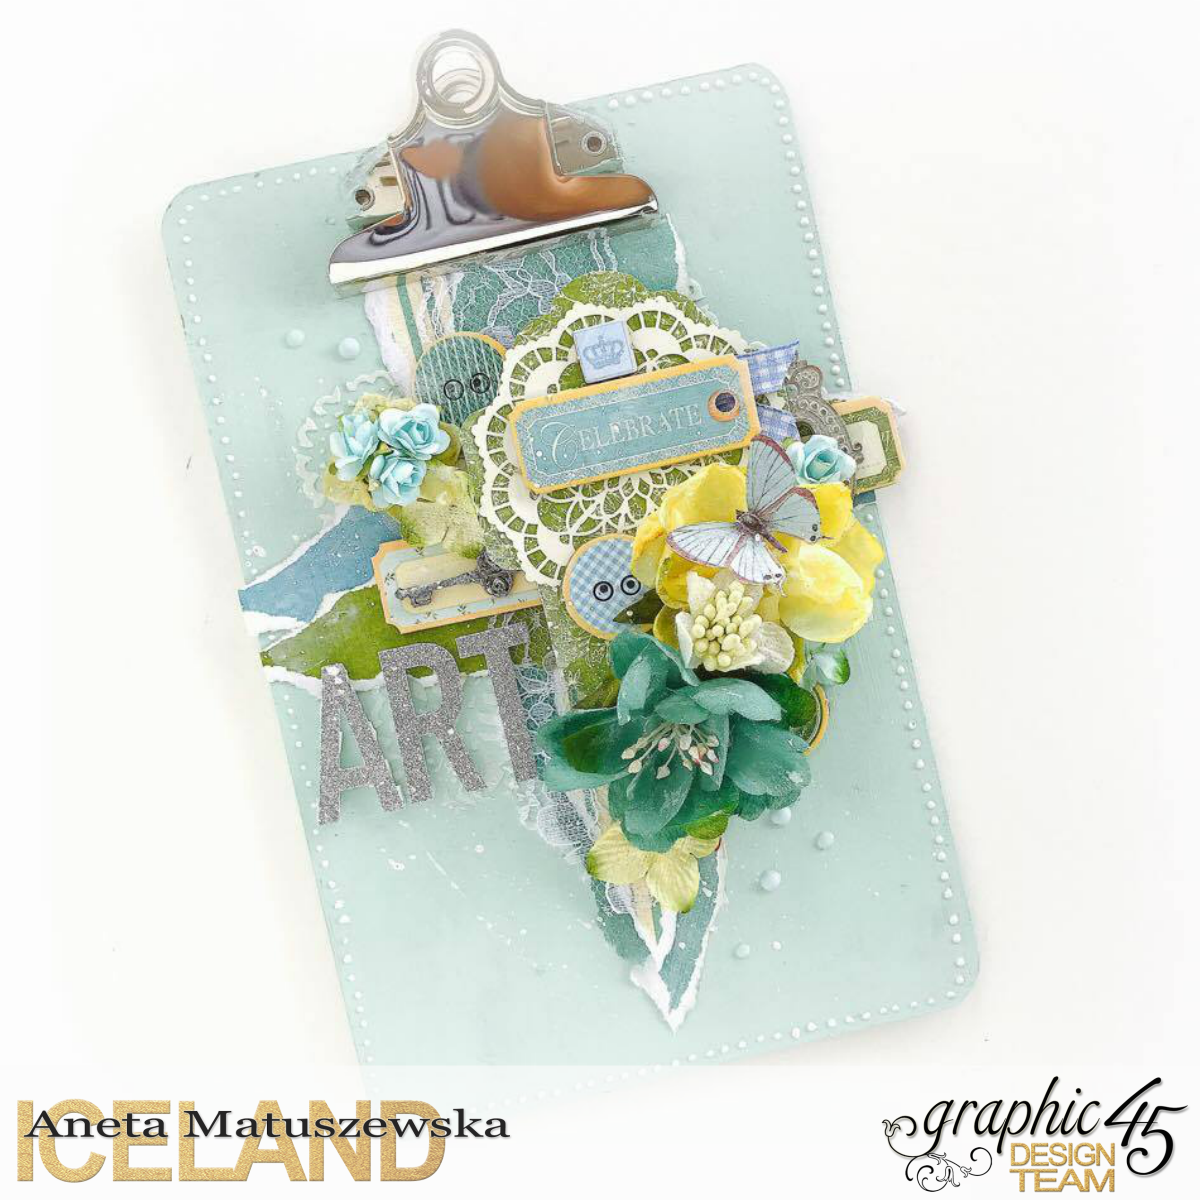 Once Upon a Springtime and Café Parisian altered note pad for G45, by Aneta Matuszewska photo 5.png